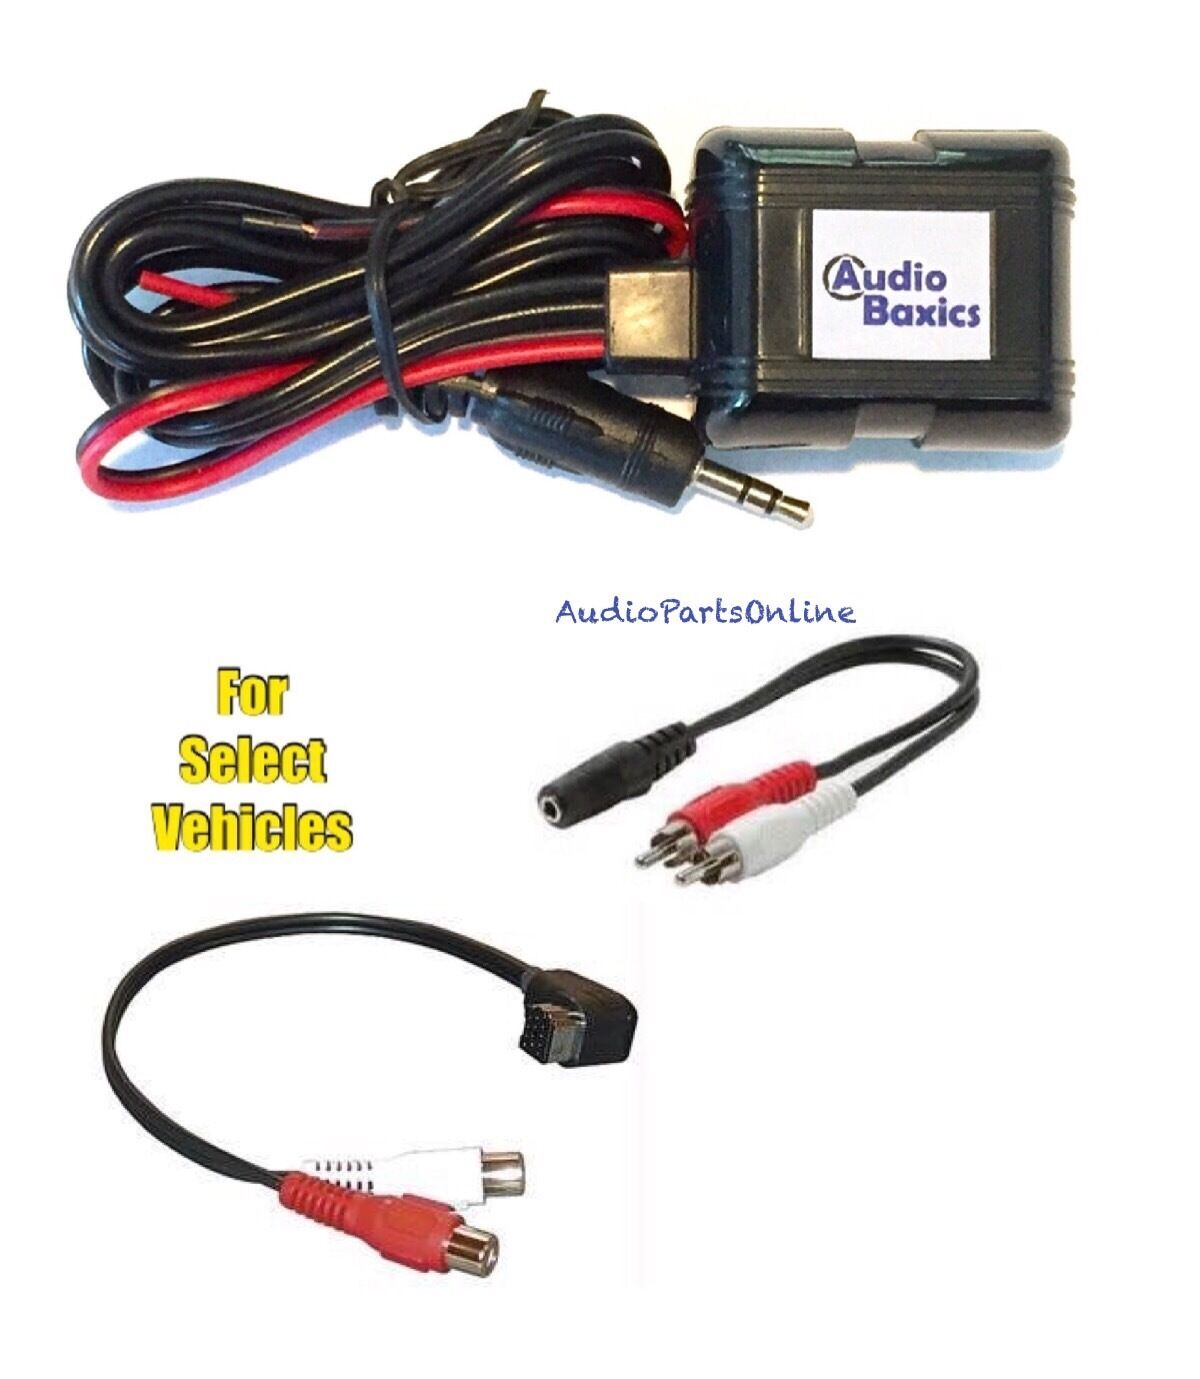 Deh P2900mp Wiring Harness Bluetooth A2dp Stream Adapter For Pioneer Avic Z1 Z2 Z3 1 Of See More